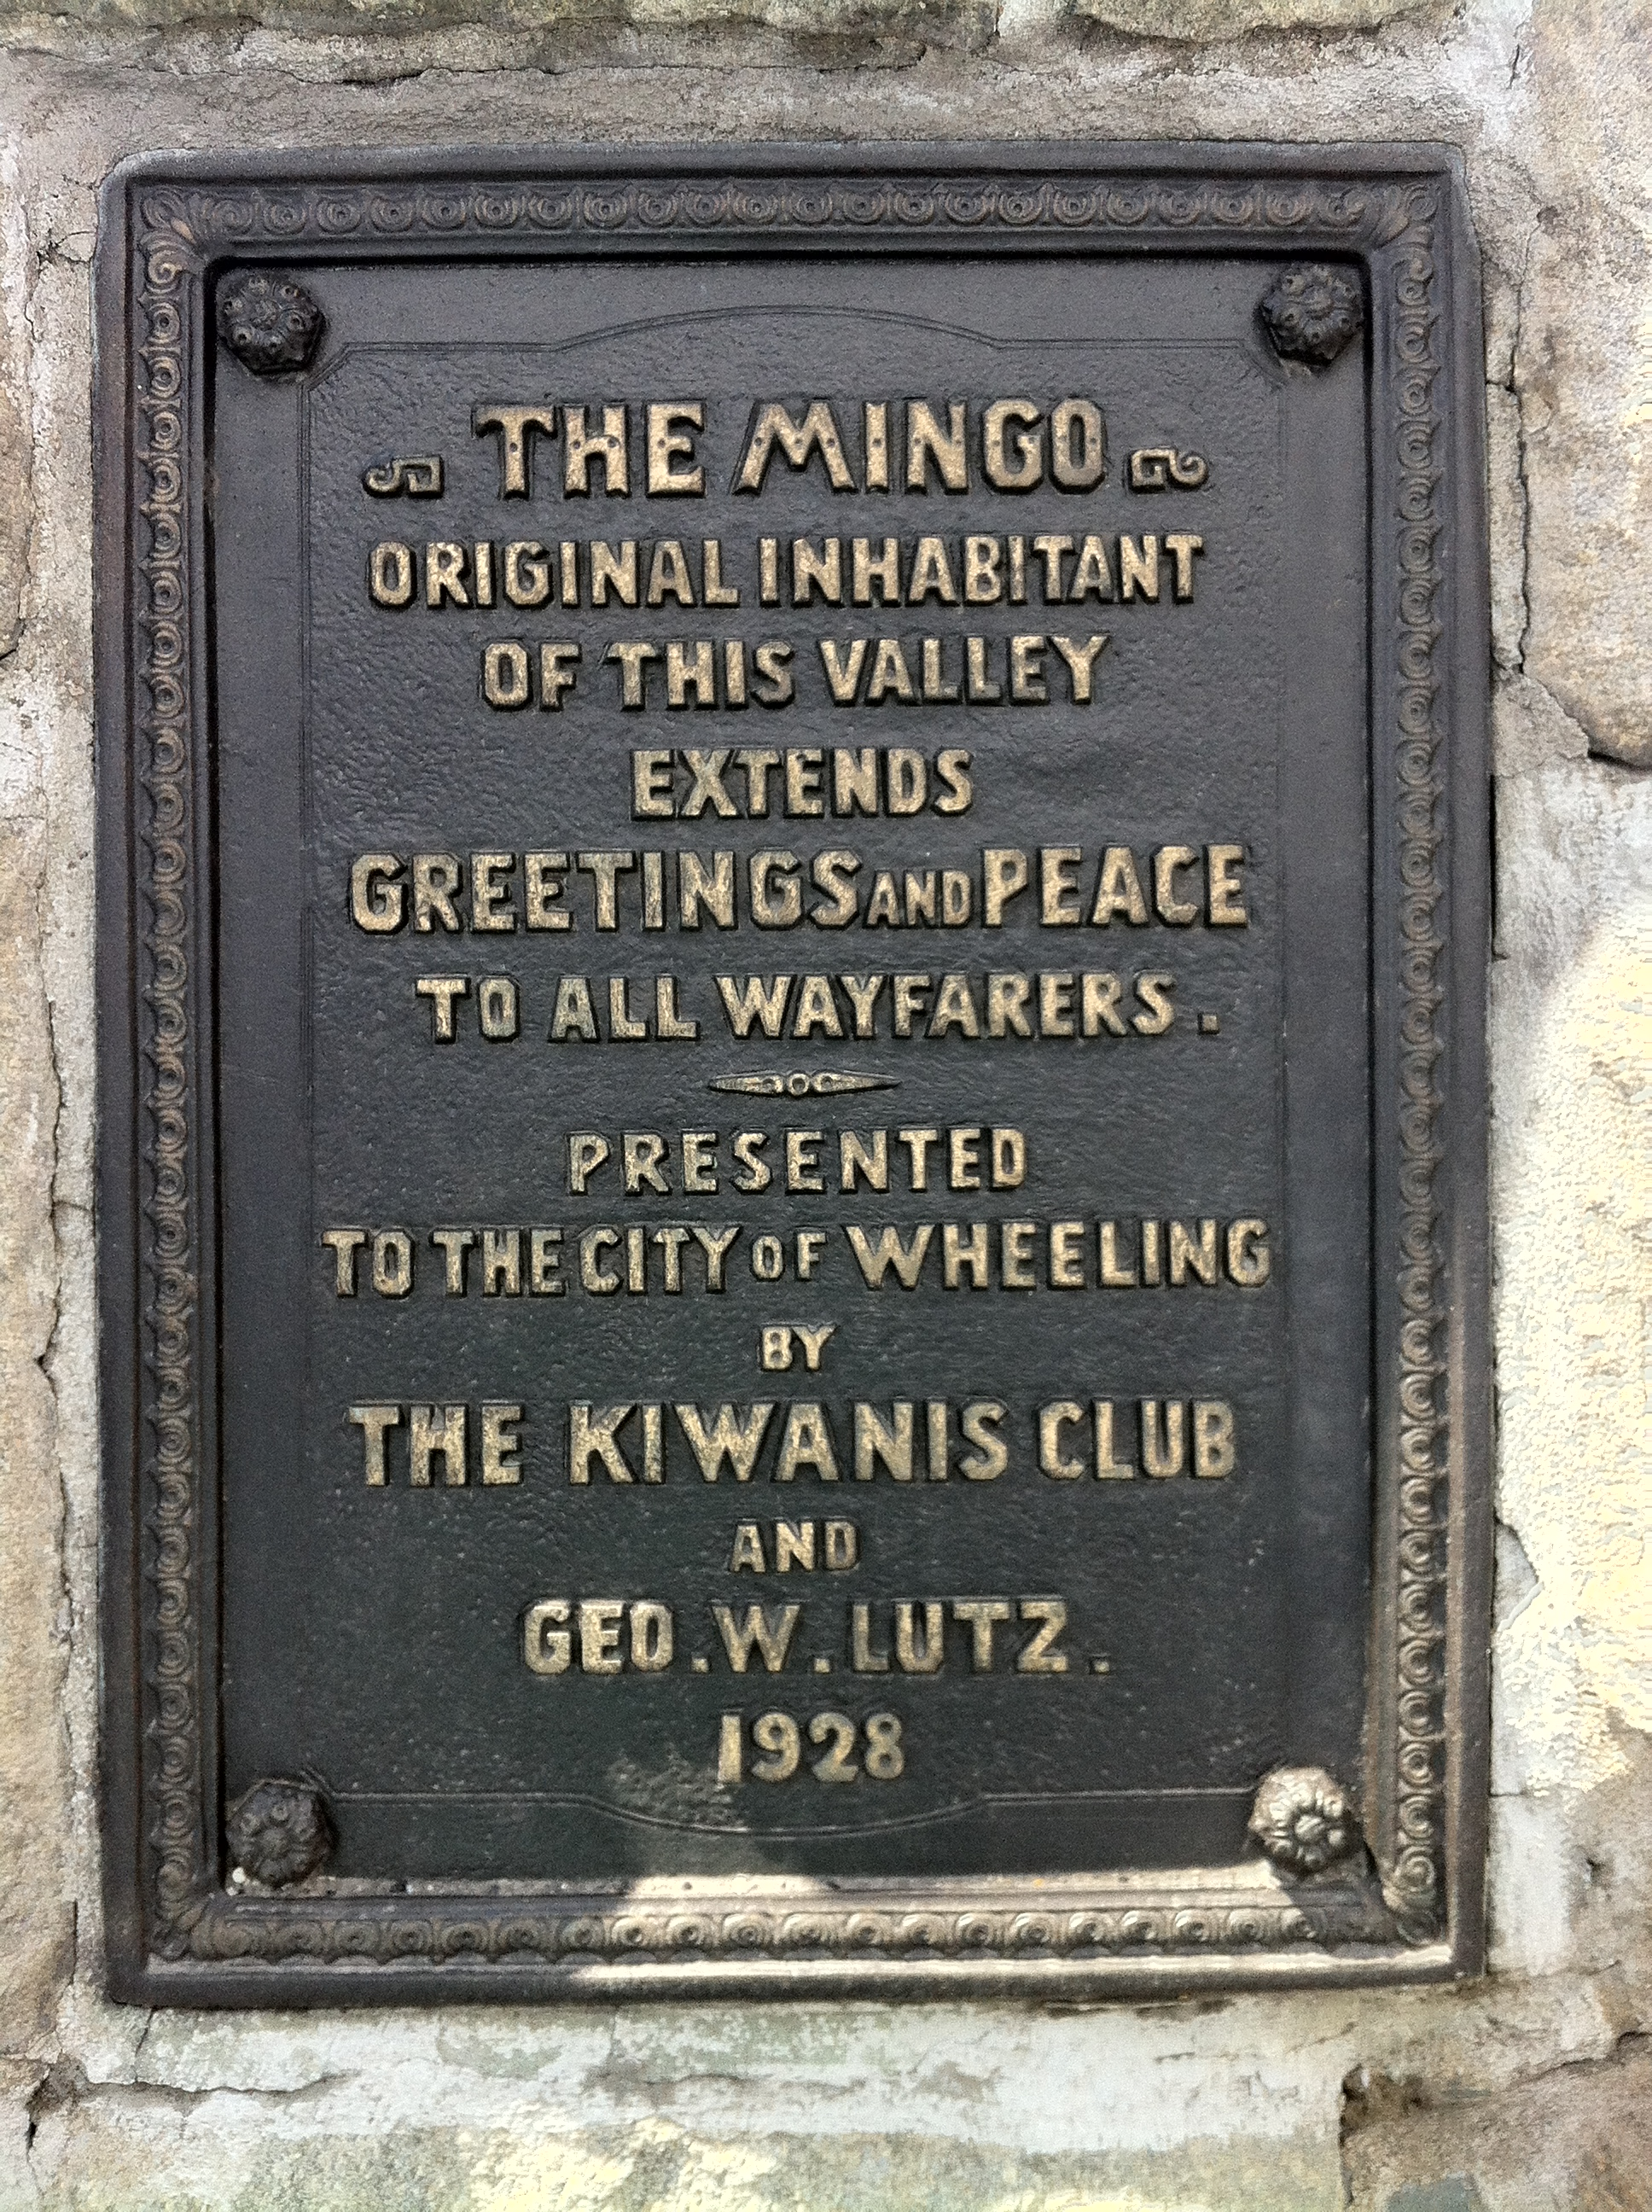 The plaque on the base of the Mingo Statue